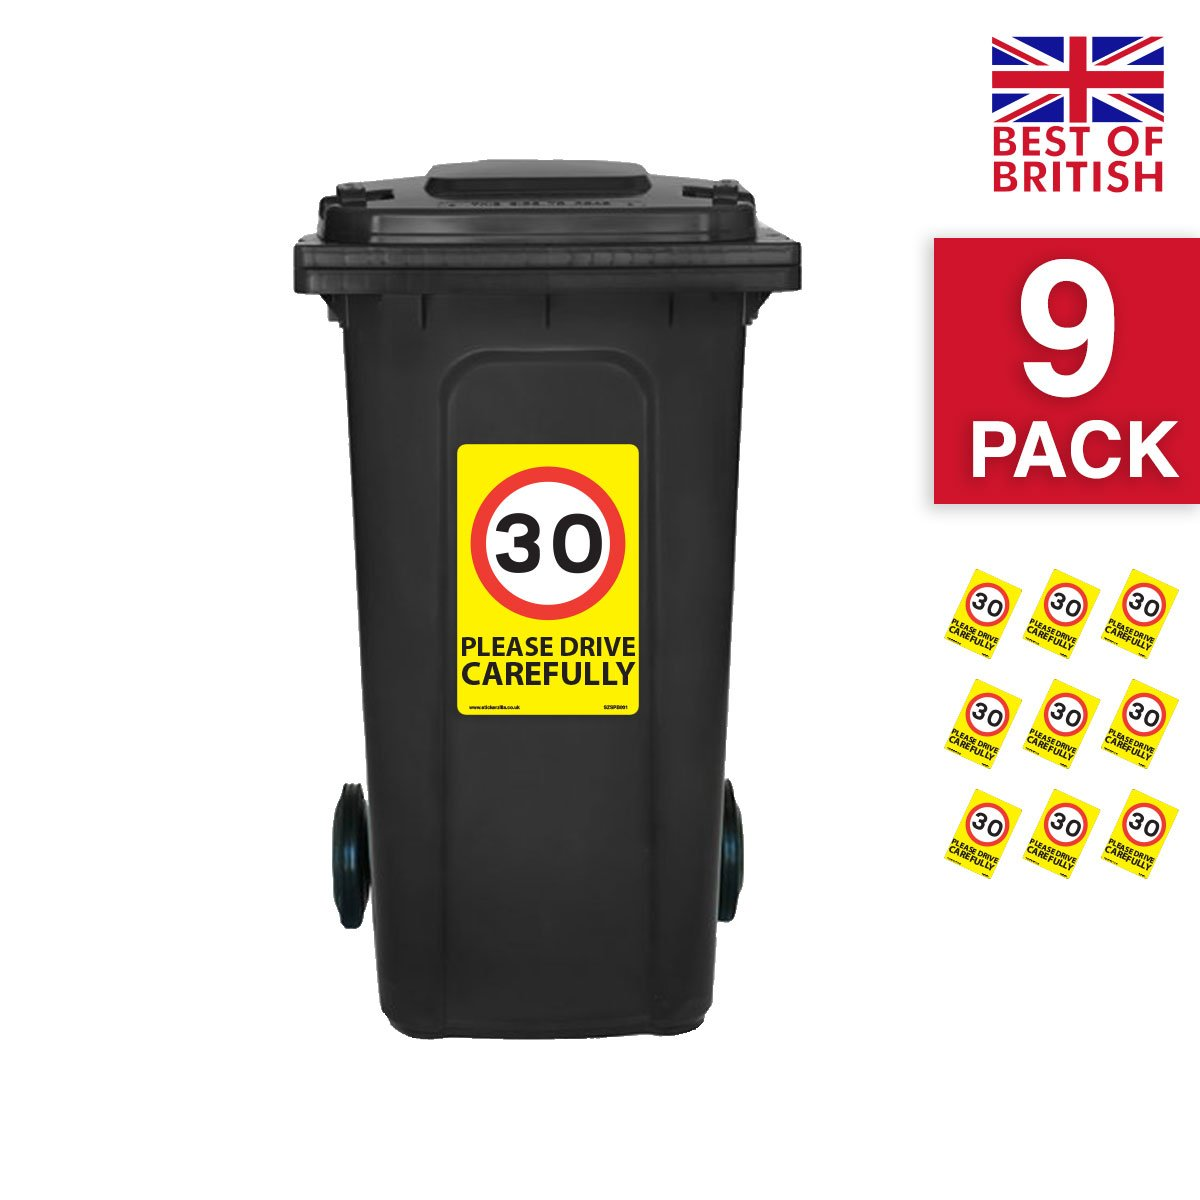 30 Mph Speed Signs [9 X Pack] - A4 Vinyl Stickers, Yellow Background Ideal For Wheelie Bins Stickerzilla